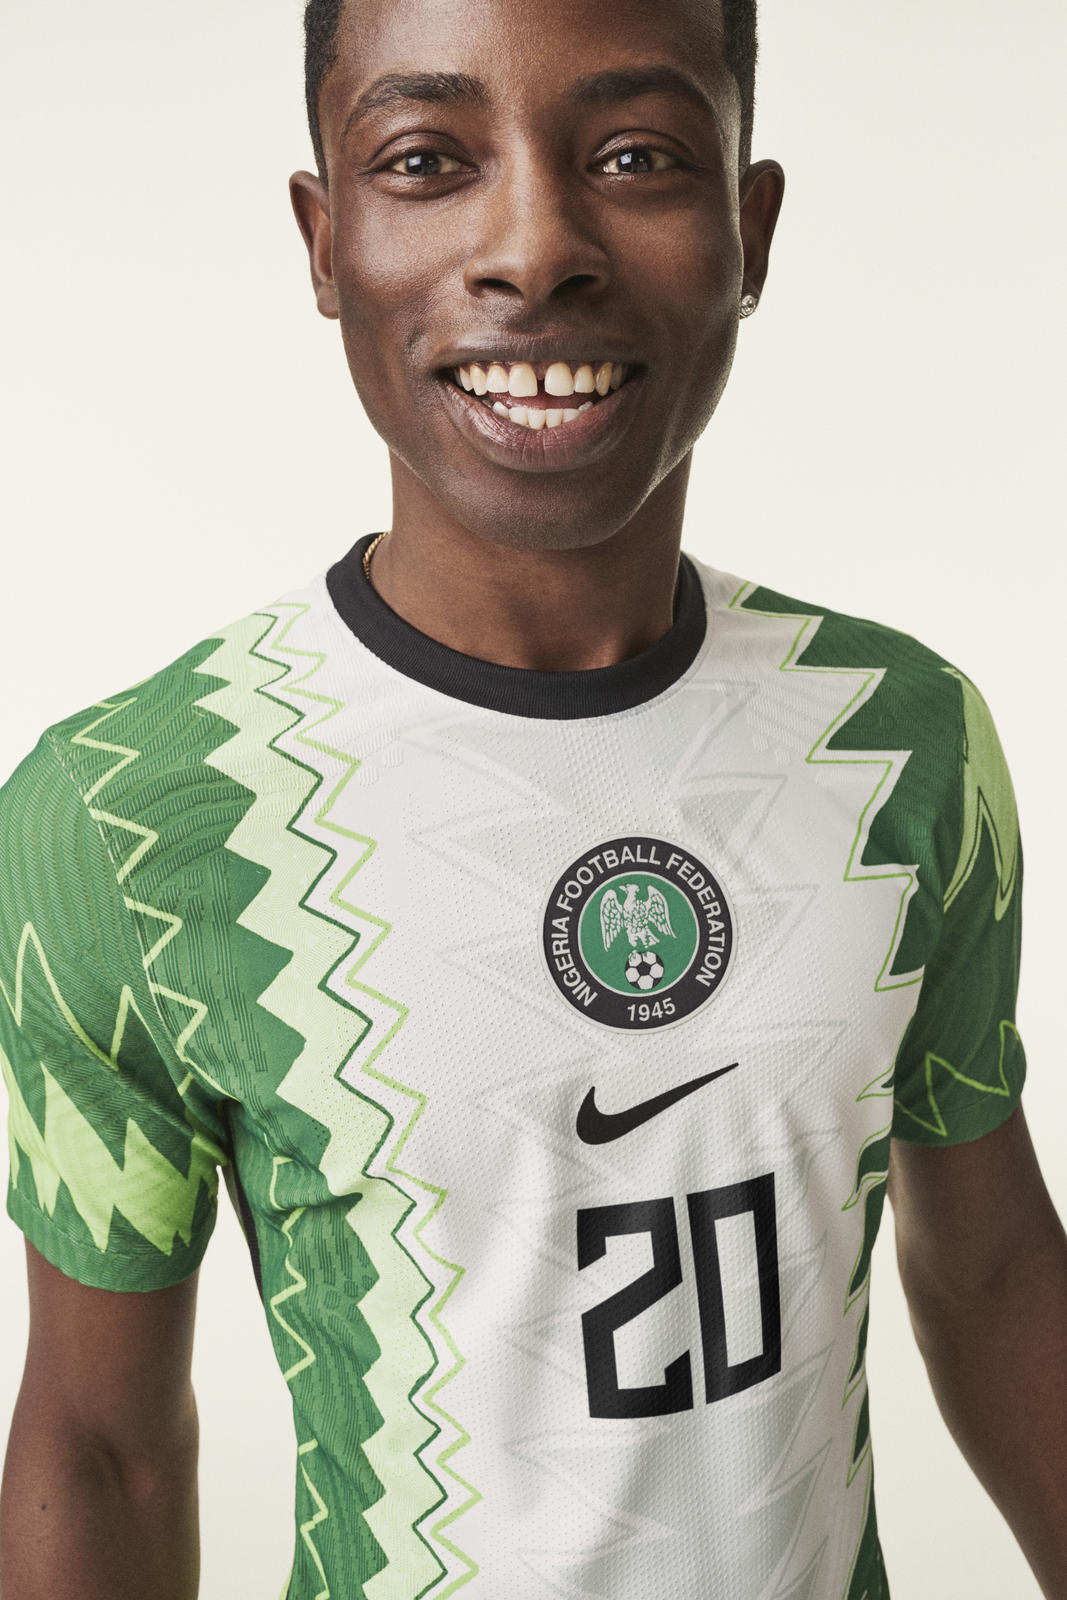 Nike Football 2020 Kits: Nigeria, Korea, USA 5